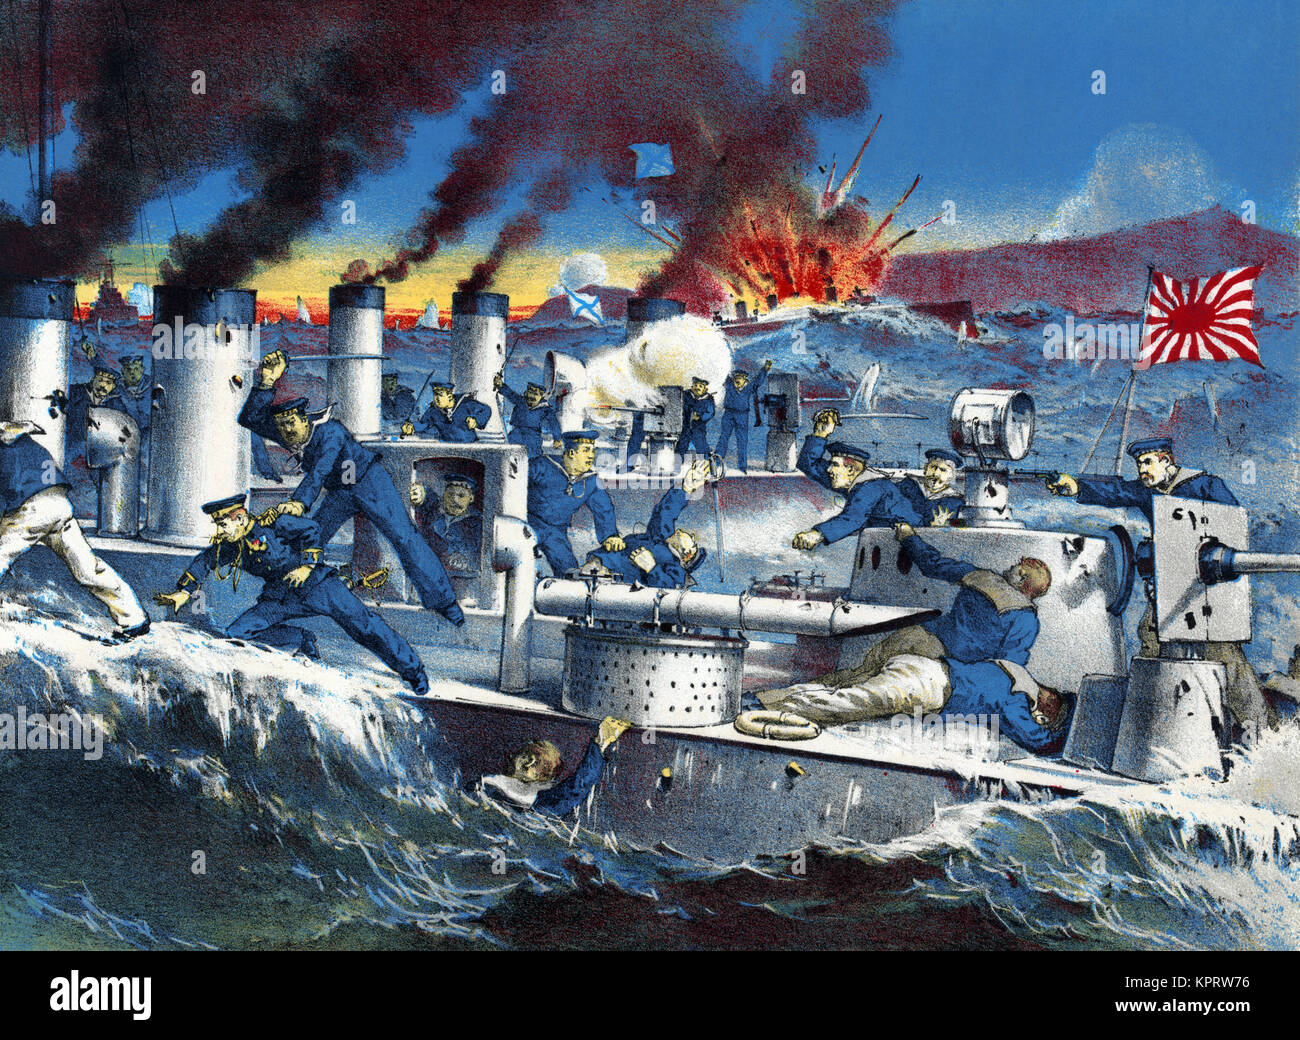 Destruction of the Russian Destroyers Stock Photo